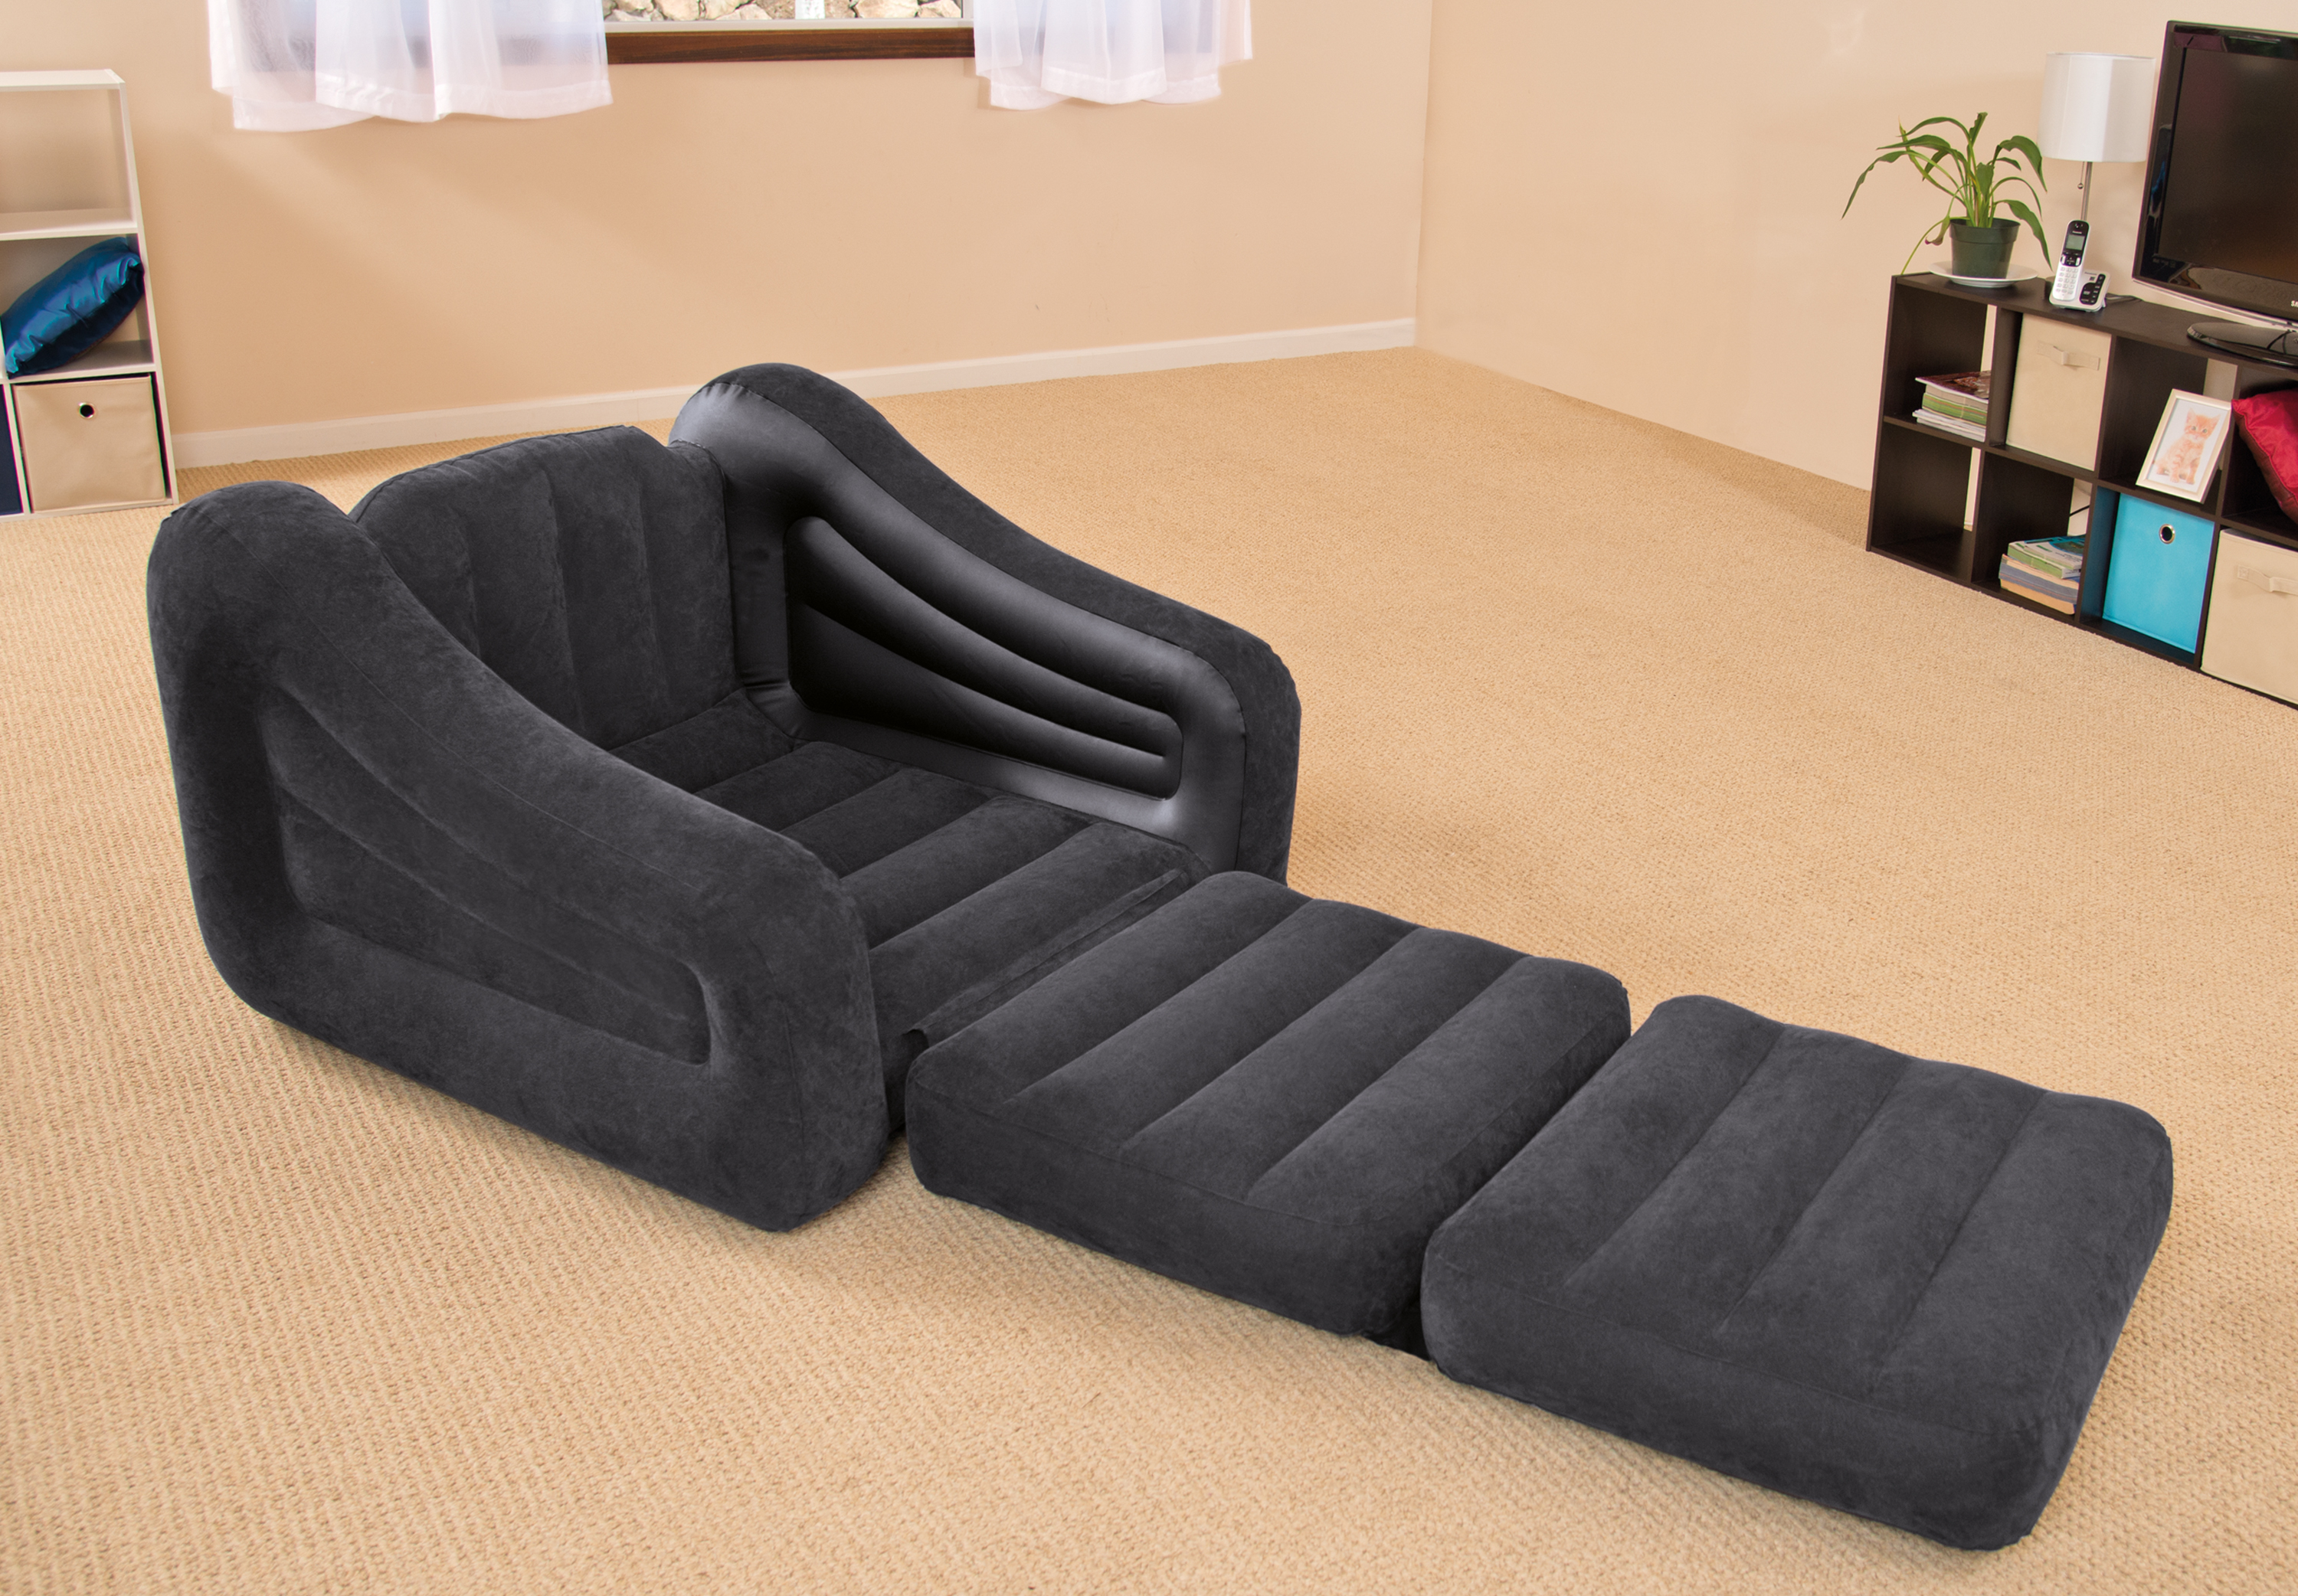 Intex Inflatable Air Chair with Pull Out Twin Bed Mattress  : 68565ep2 from www.ebay.com size 3000 x 2084 jpeg 3664kB